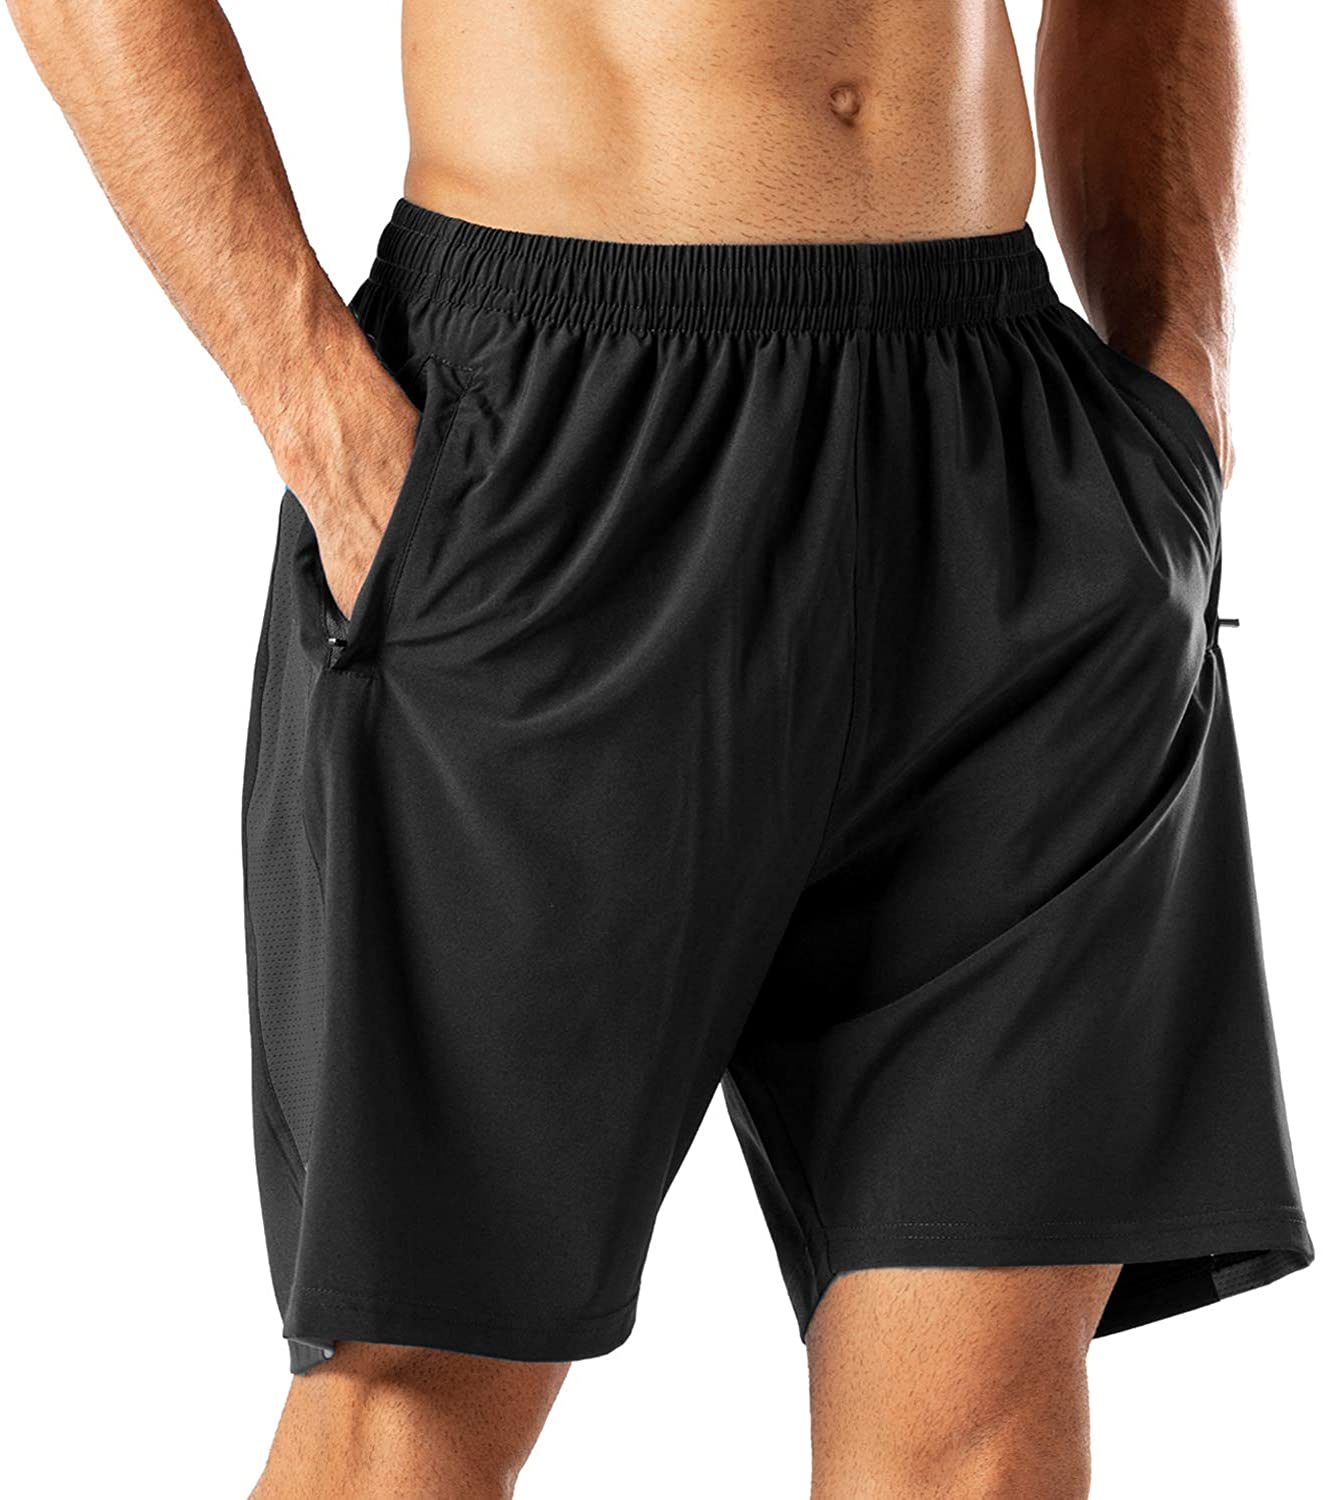 HMIYA Men's Casual Sports Quick Dry Workout Running or Gym Train